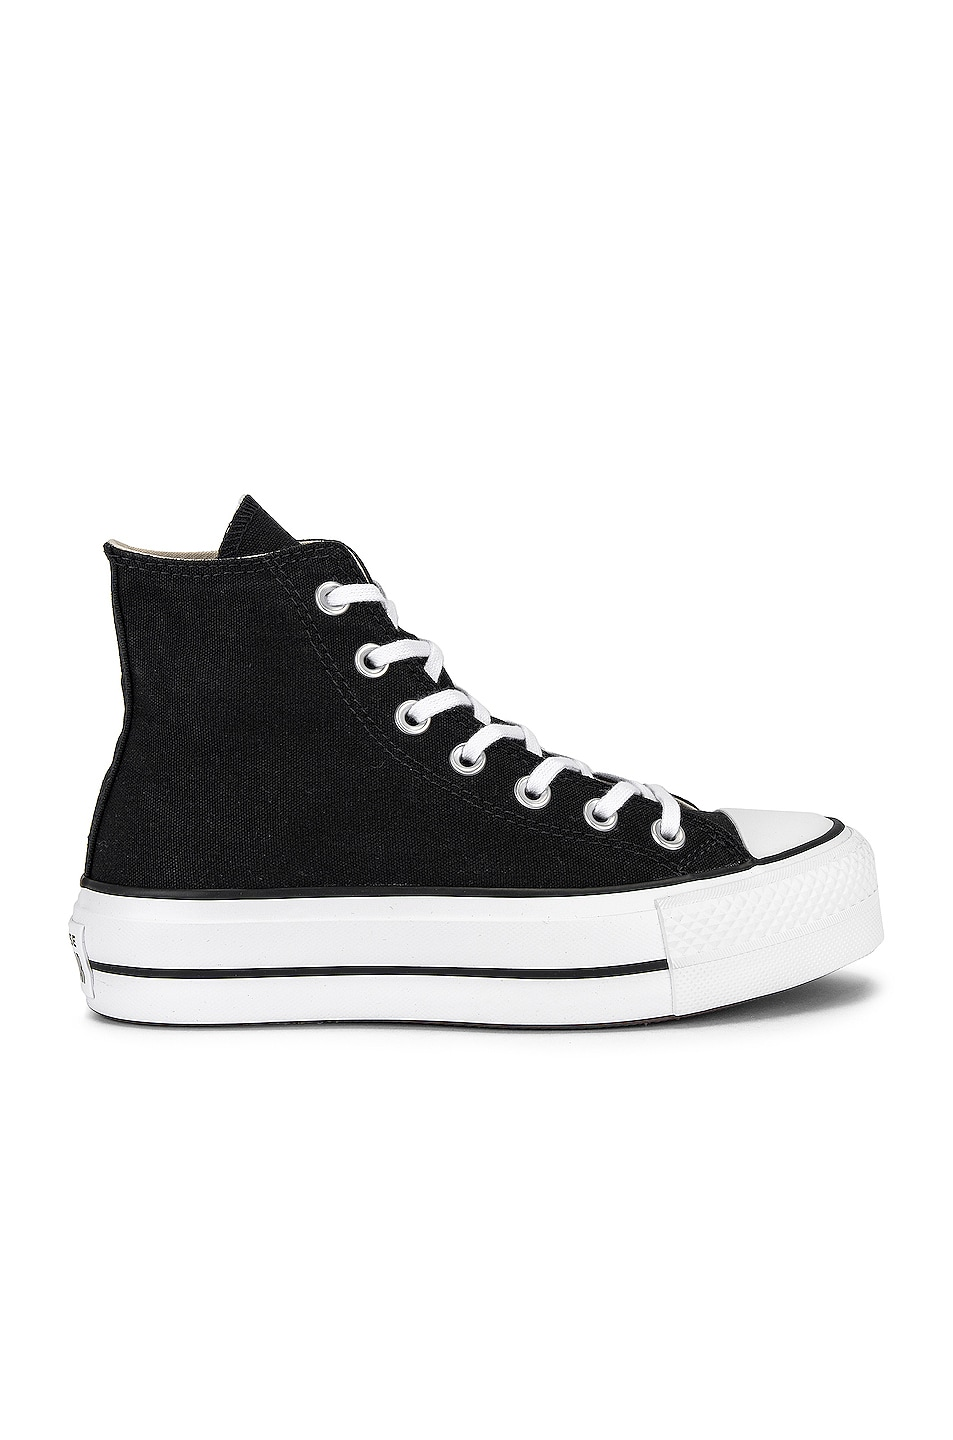 Image 1 of Converse Chuck Taylor All Star Lift Hi in Black